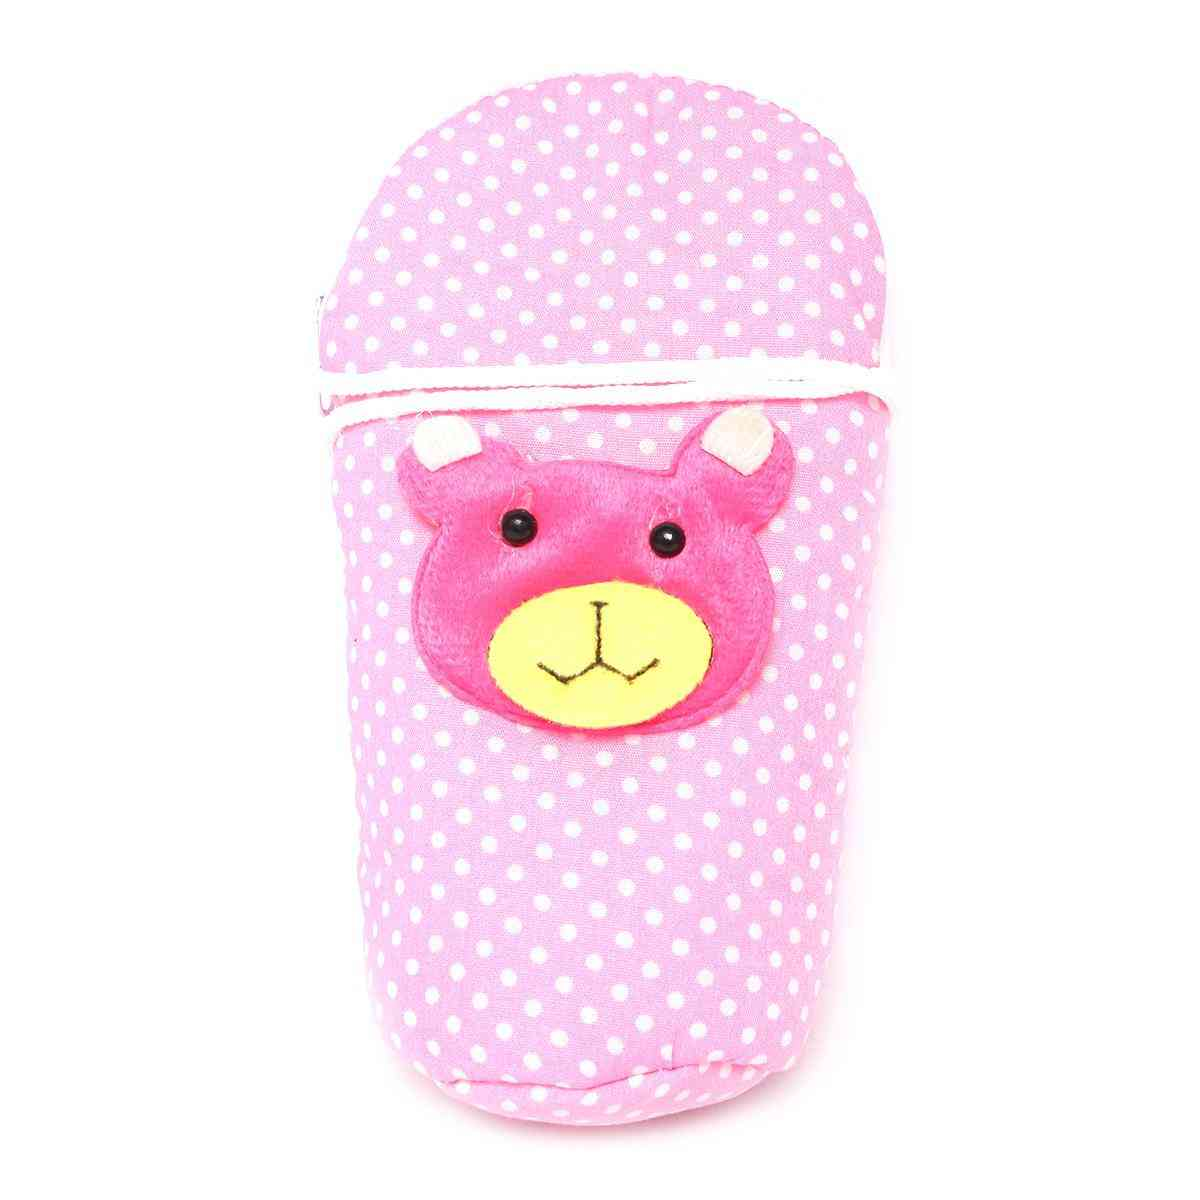 Vitamin Baby Cartoon Character 7x4 Inches Feeder Cover for Feeder Bottle with String  Pink